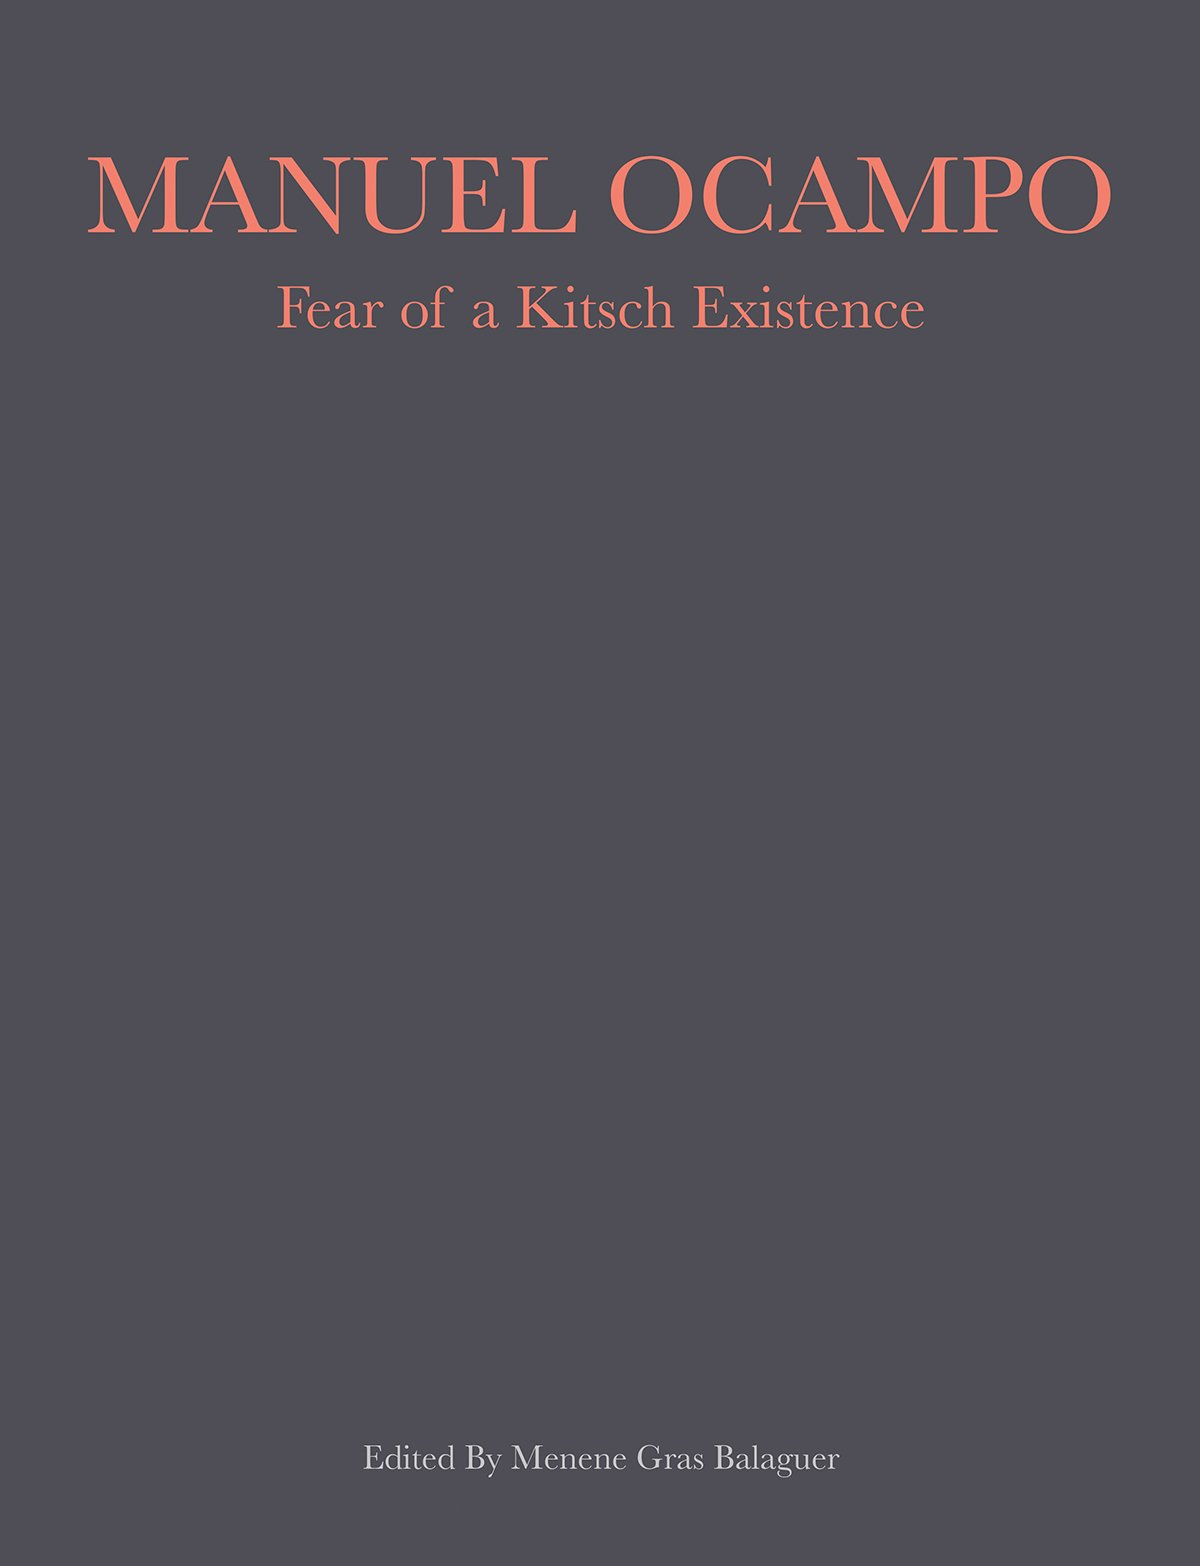 Read Online Manuel Ocampo: Fear of a Kitsch Existence pdf